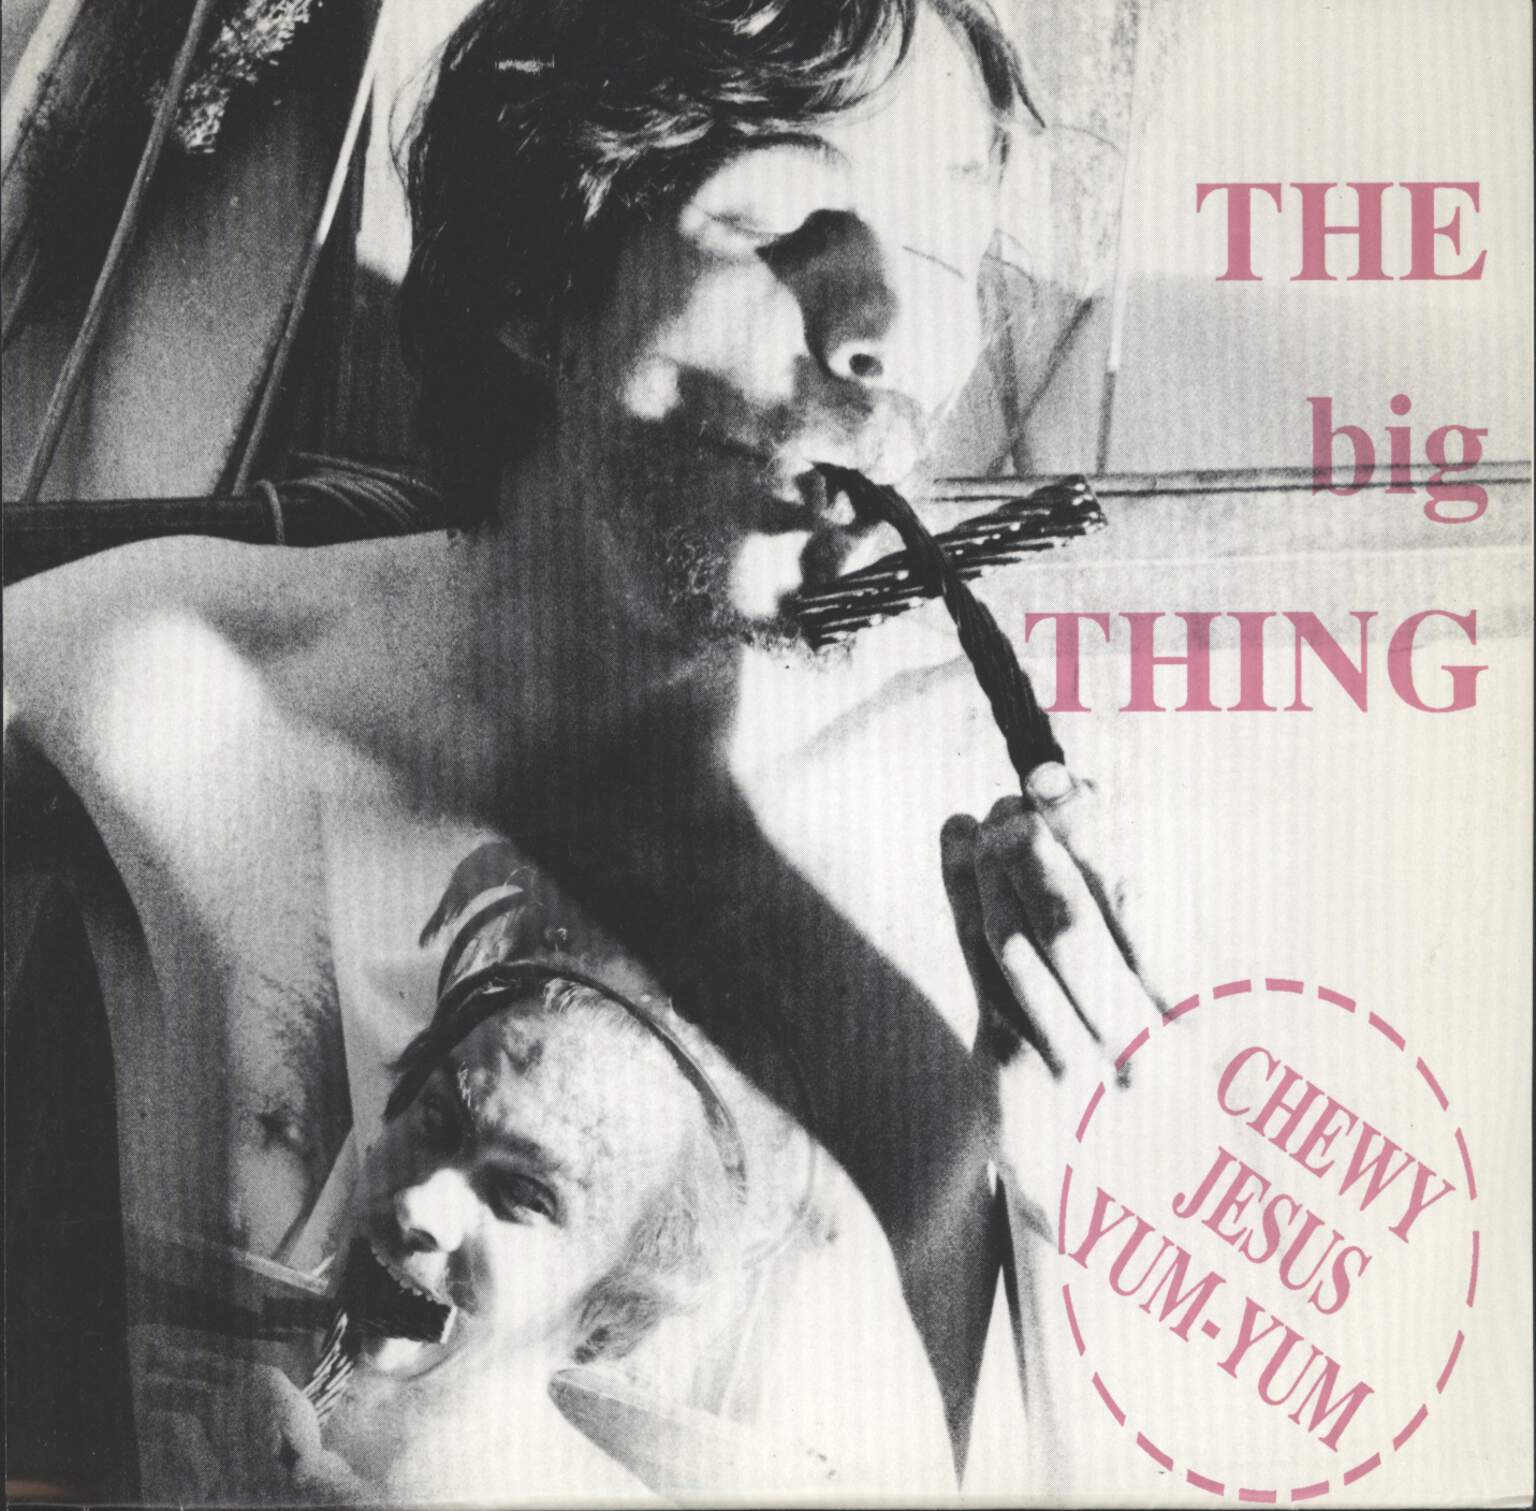 "Big Thing: Chewy Jesus Yum-Yum, 7"" Single (Vinyl)"